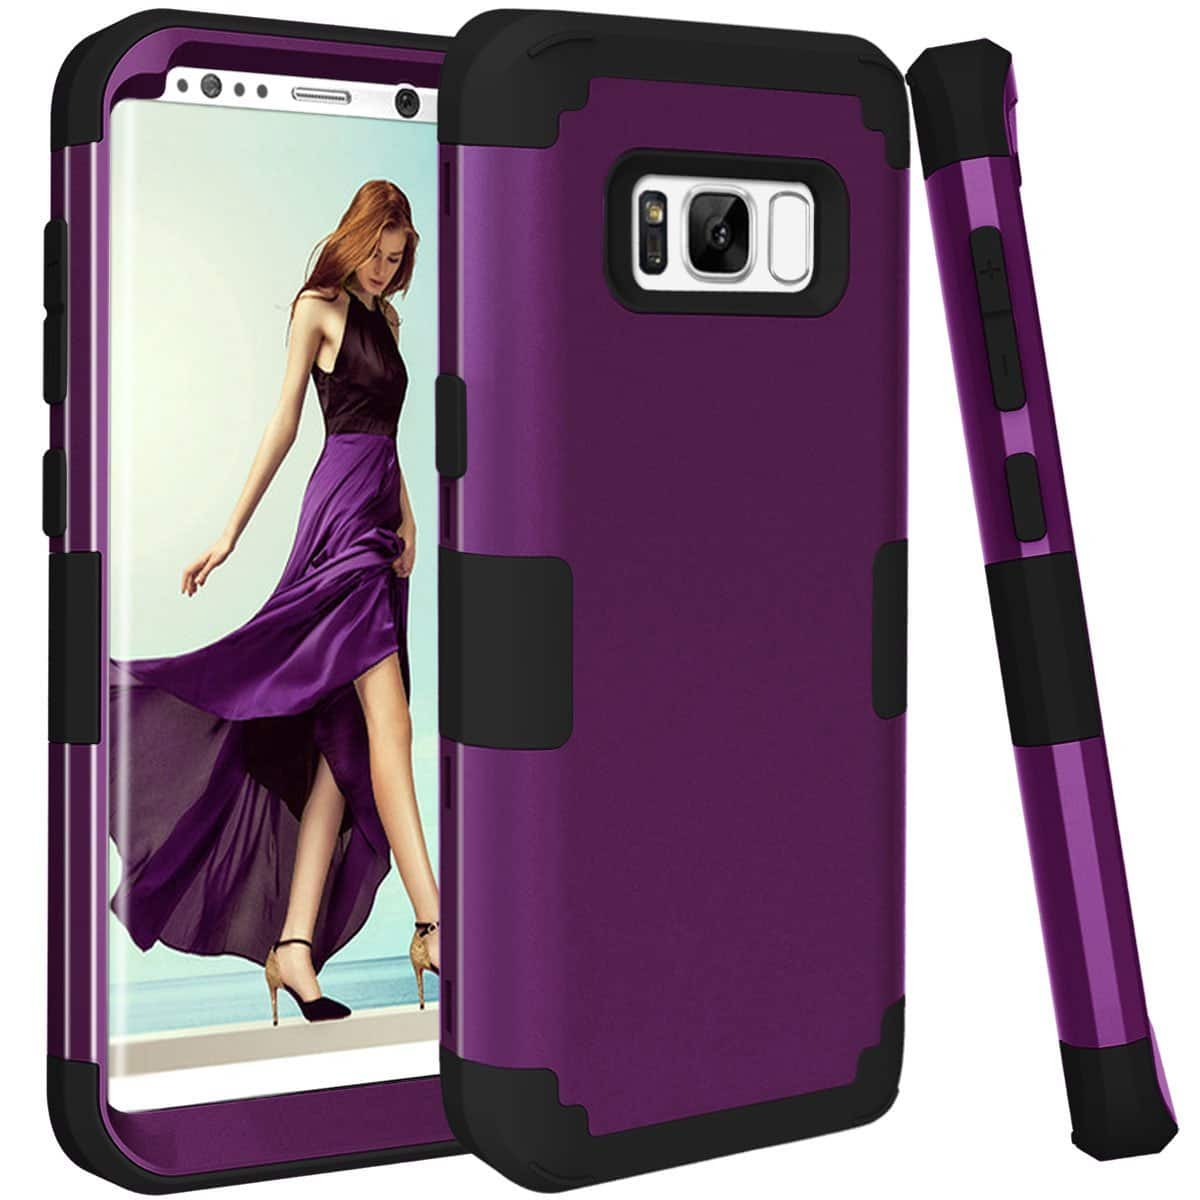 best sneakers 57249 14058 Samsung Galaxy S8 Plus case - $5 with code @ Amazon (Prime ...